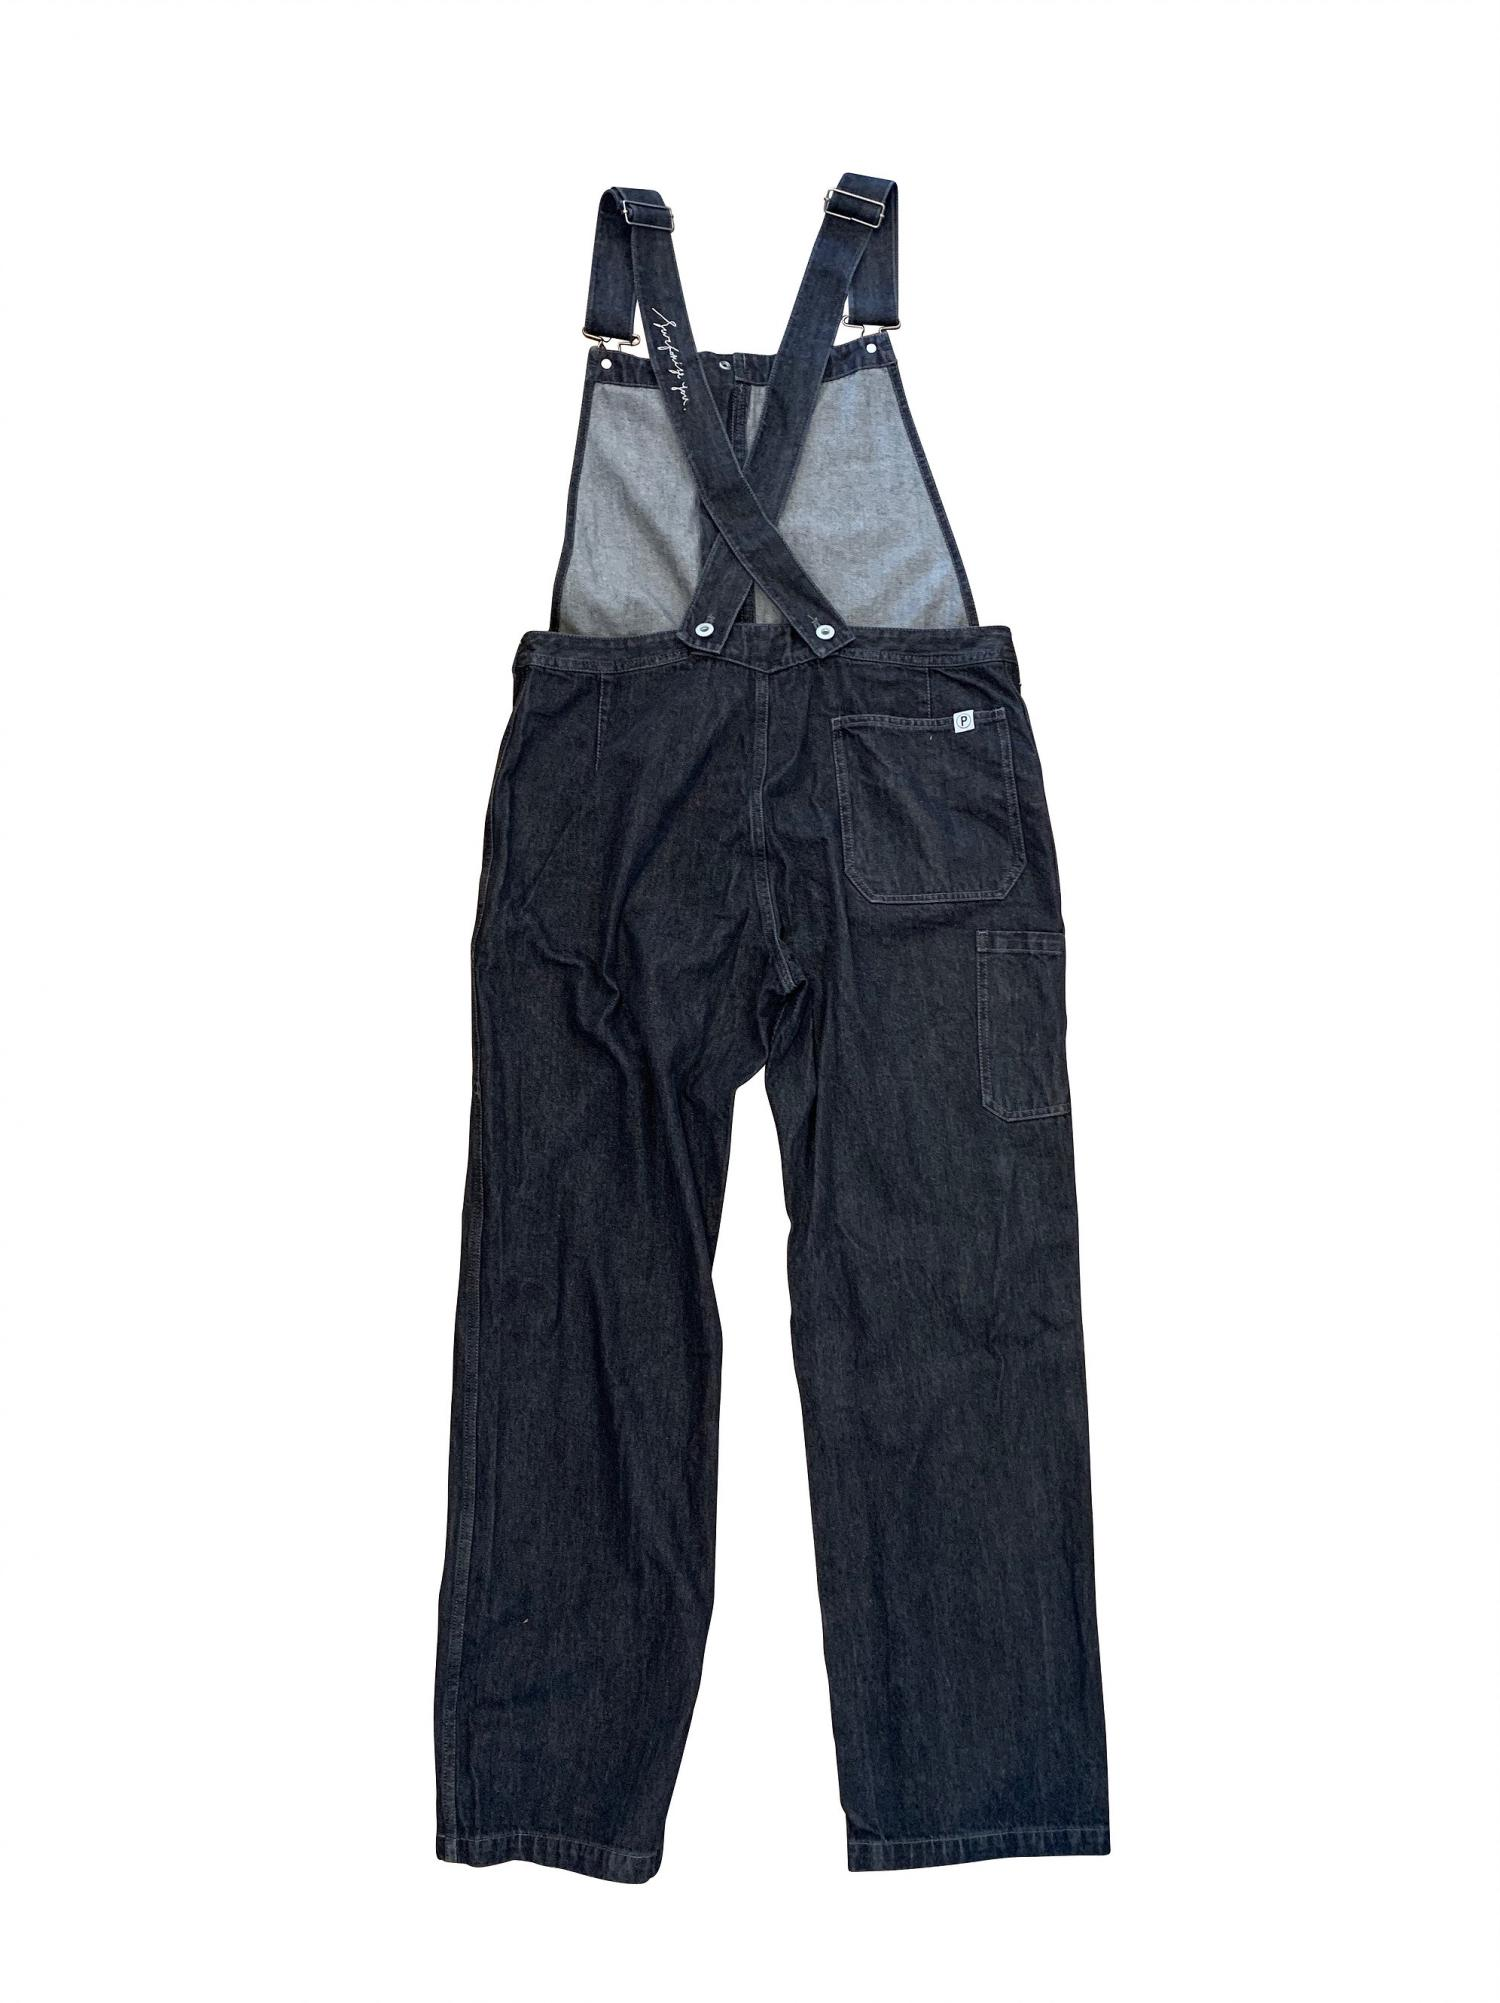 P SUPPLY. Black denim overalls